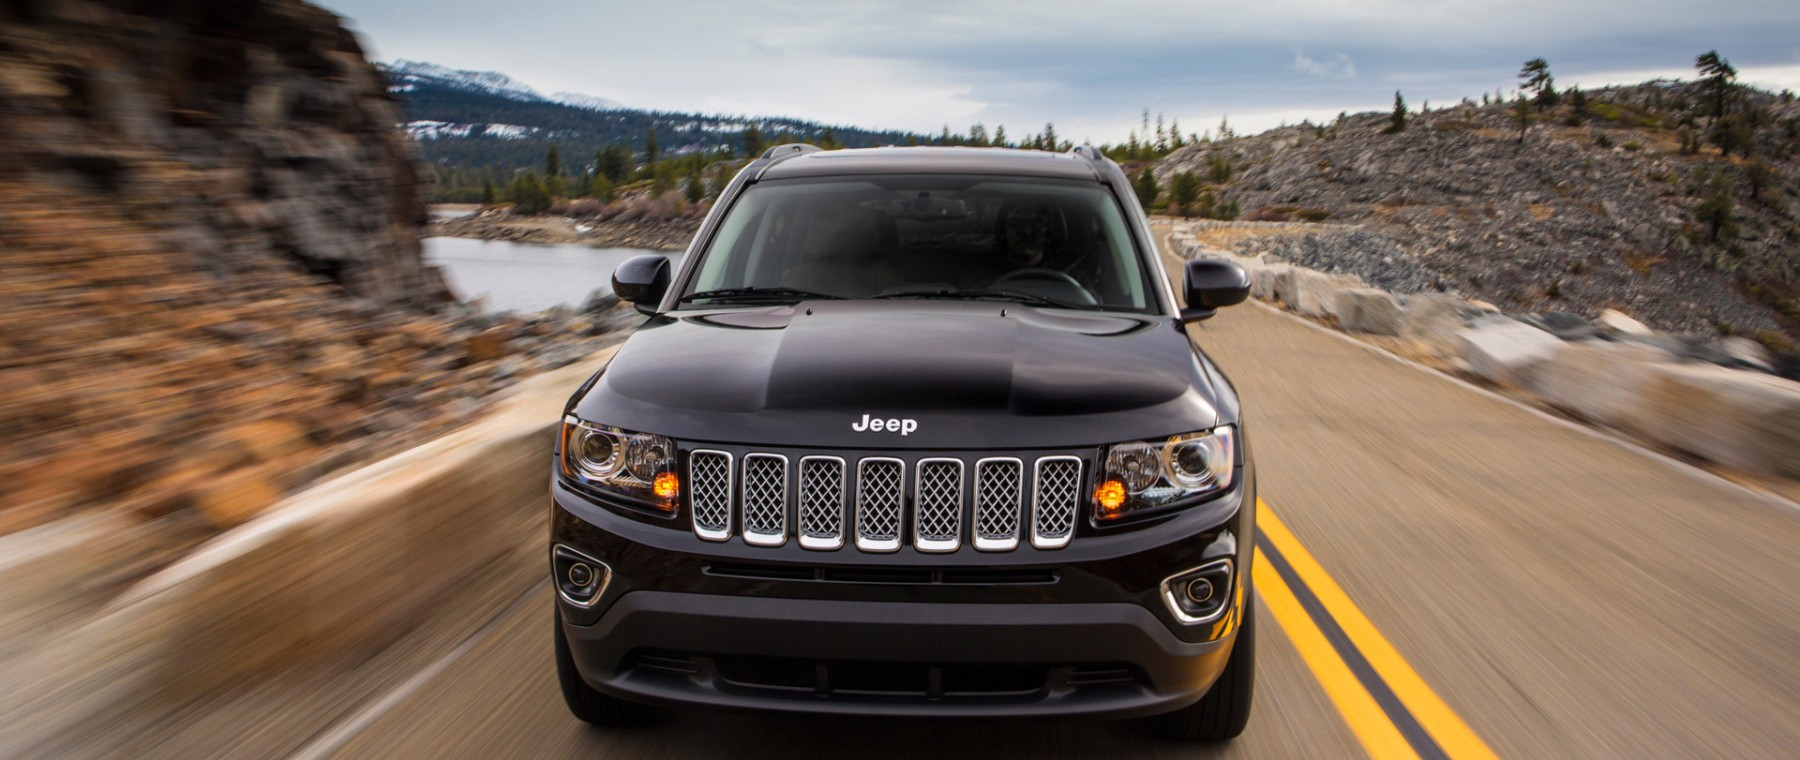 new 2015 jeep compass deals and lease offers. Black Bedroom Furniture Sets. Home Design Ideas